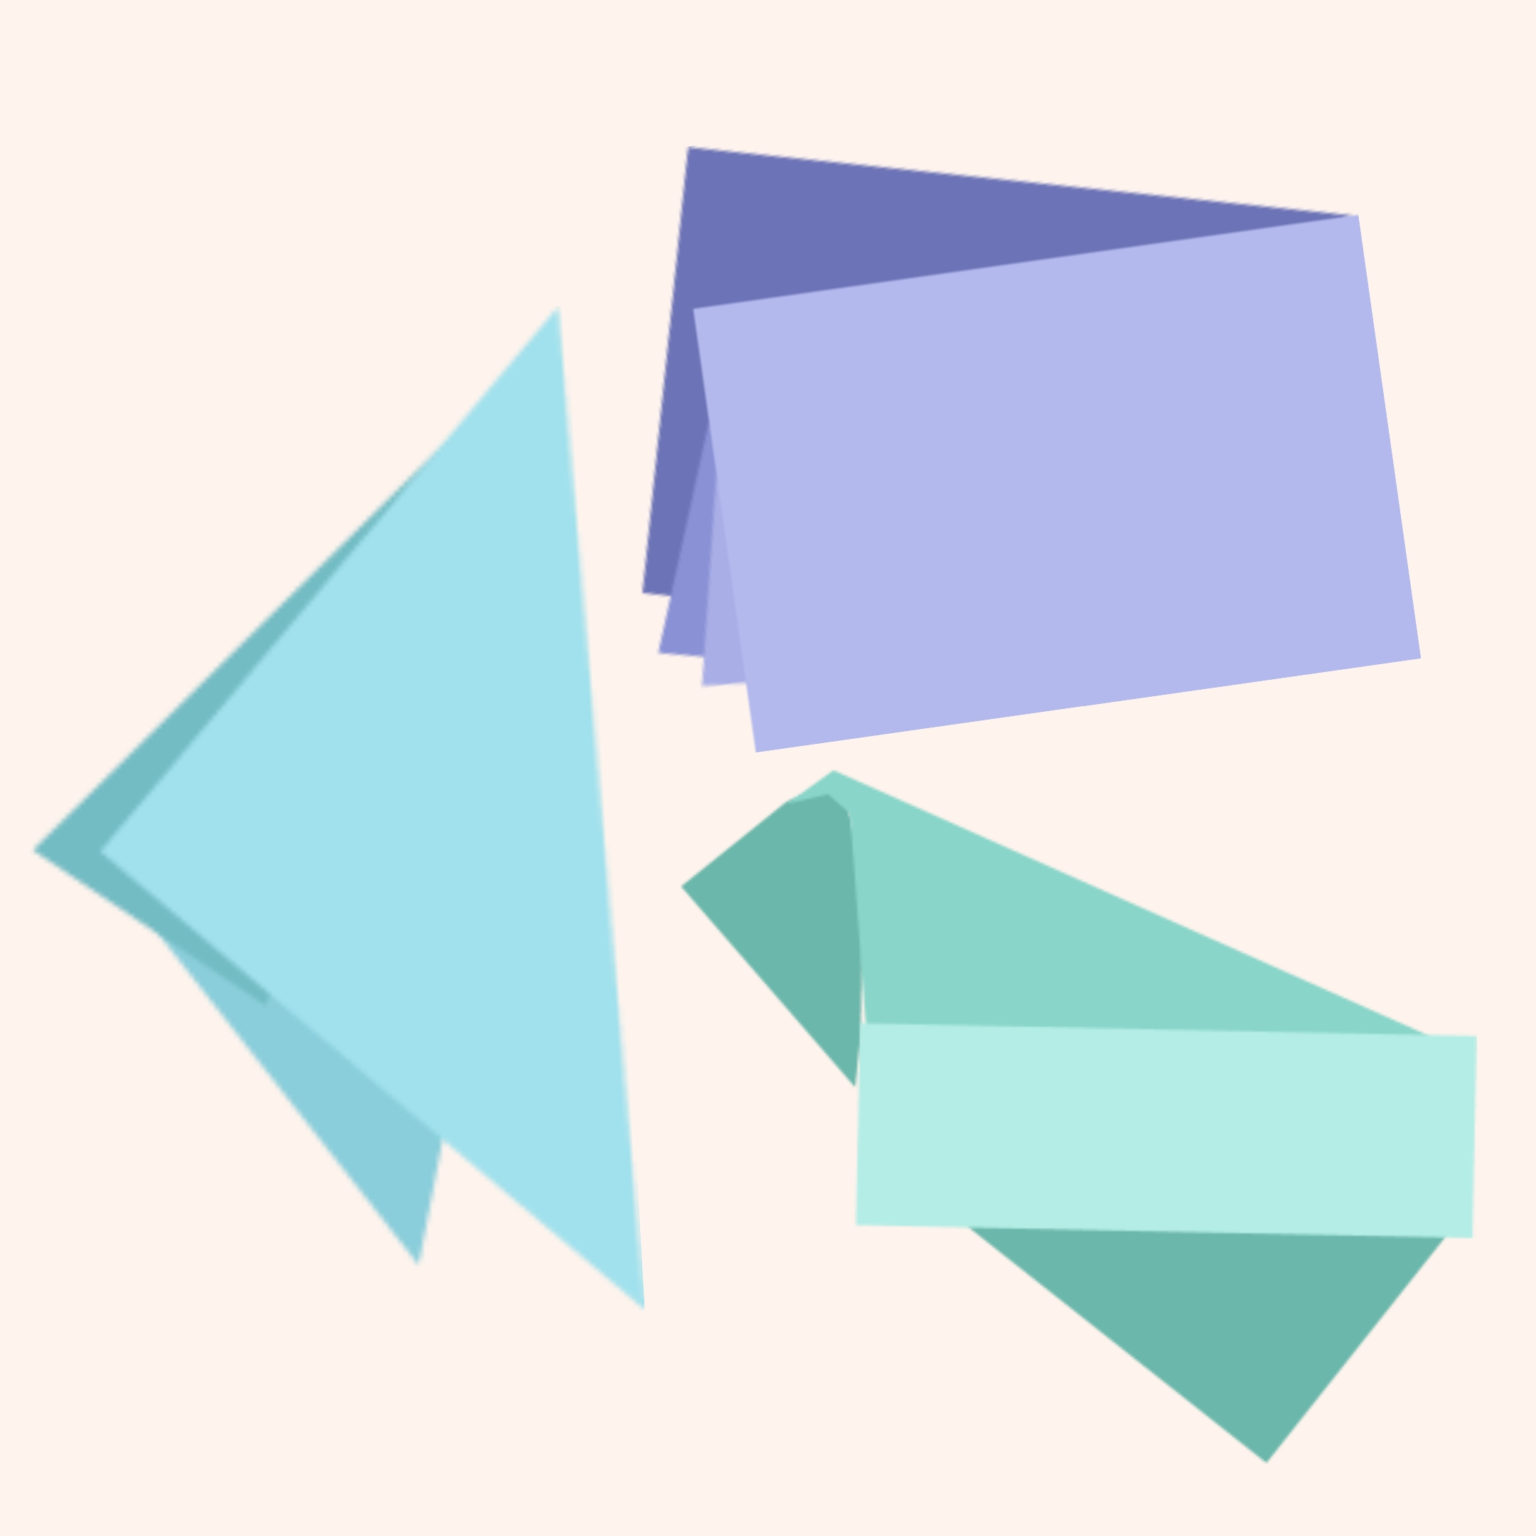 image of three pieces of folder paper